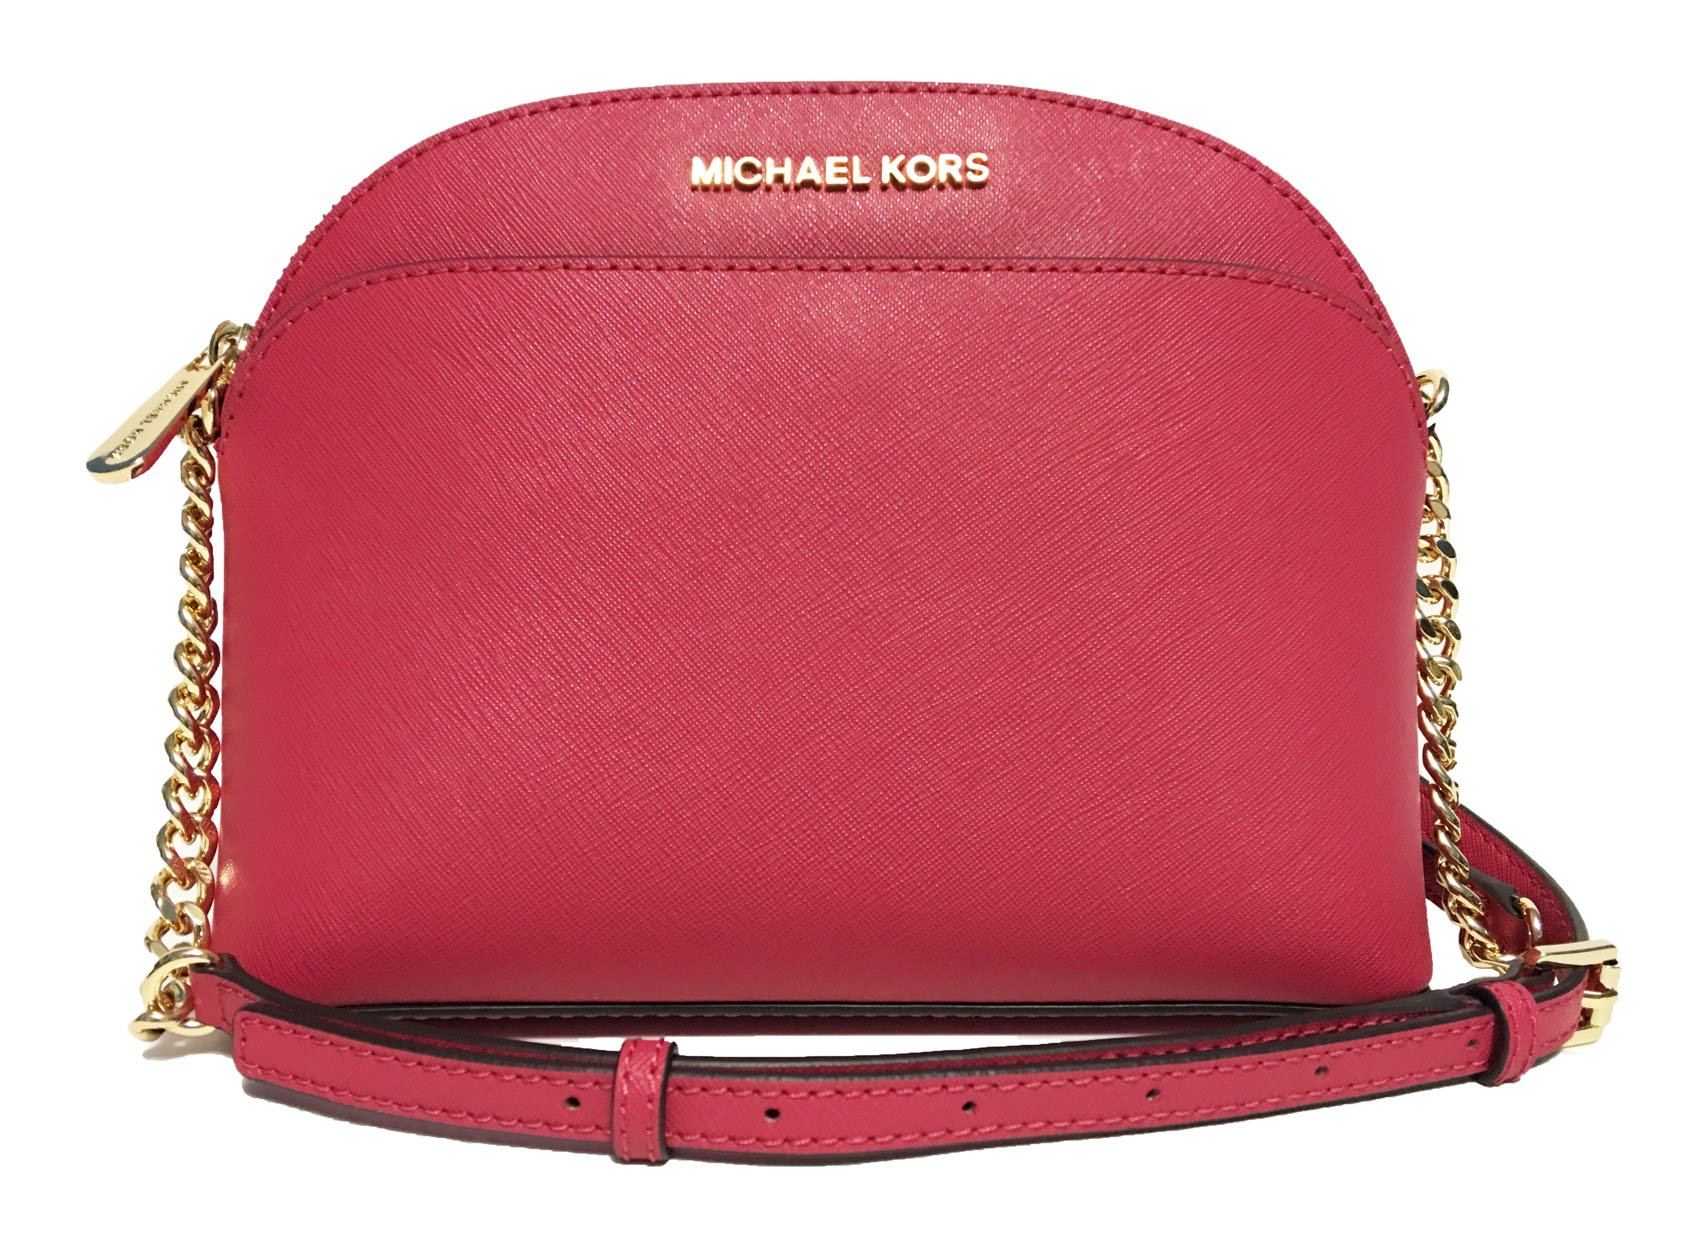 Michael Kors Emmy Medium Crossbody (Lipstick) by Michael Kors